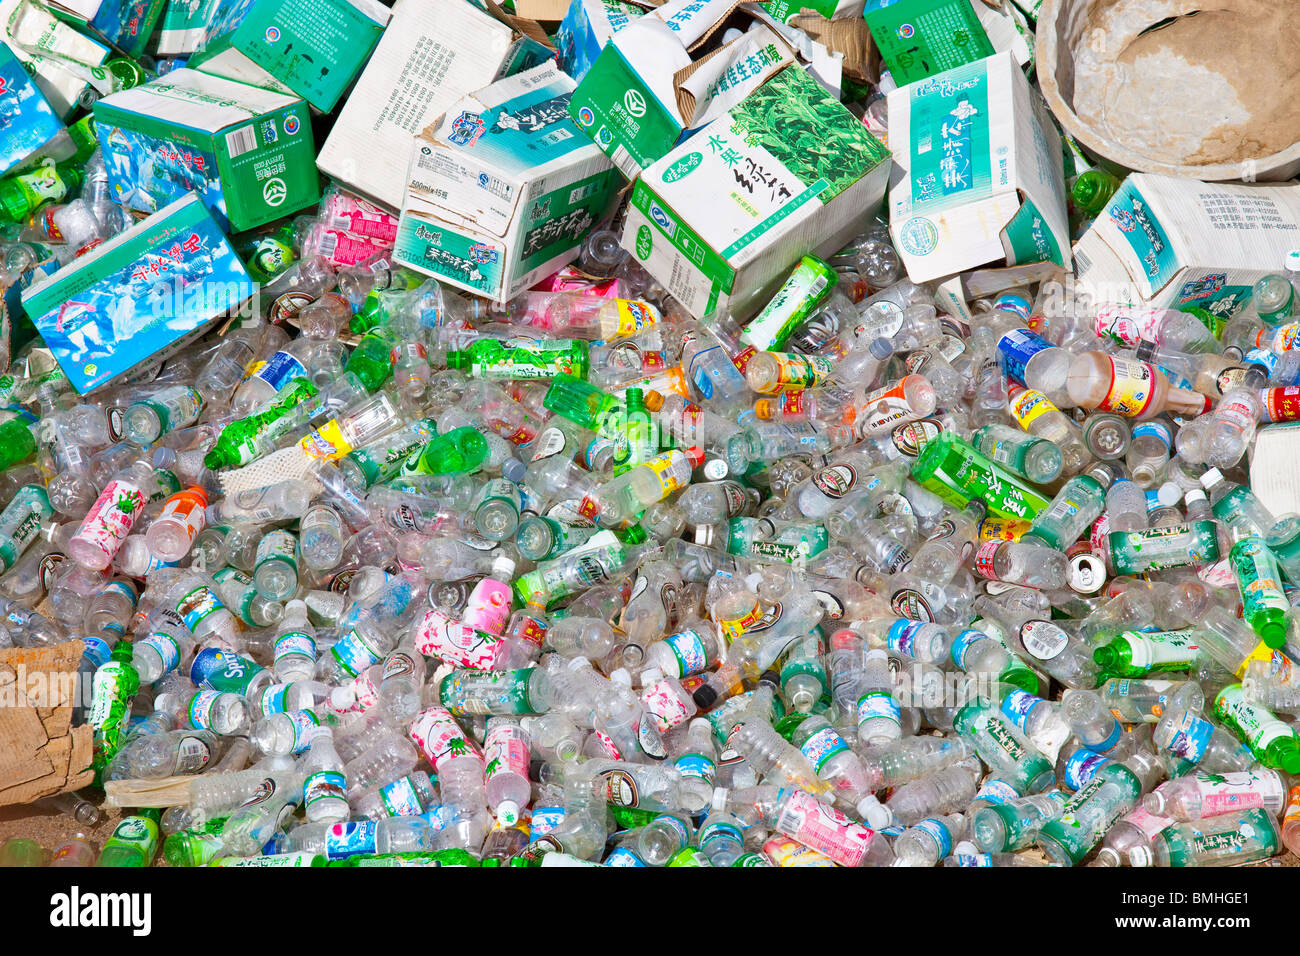 Plastic bottles gathered for recycling in Gyantse, Tibet Stock Photo